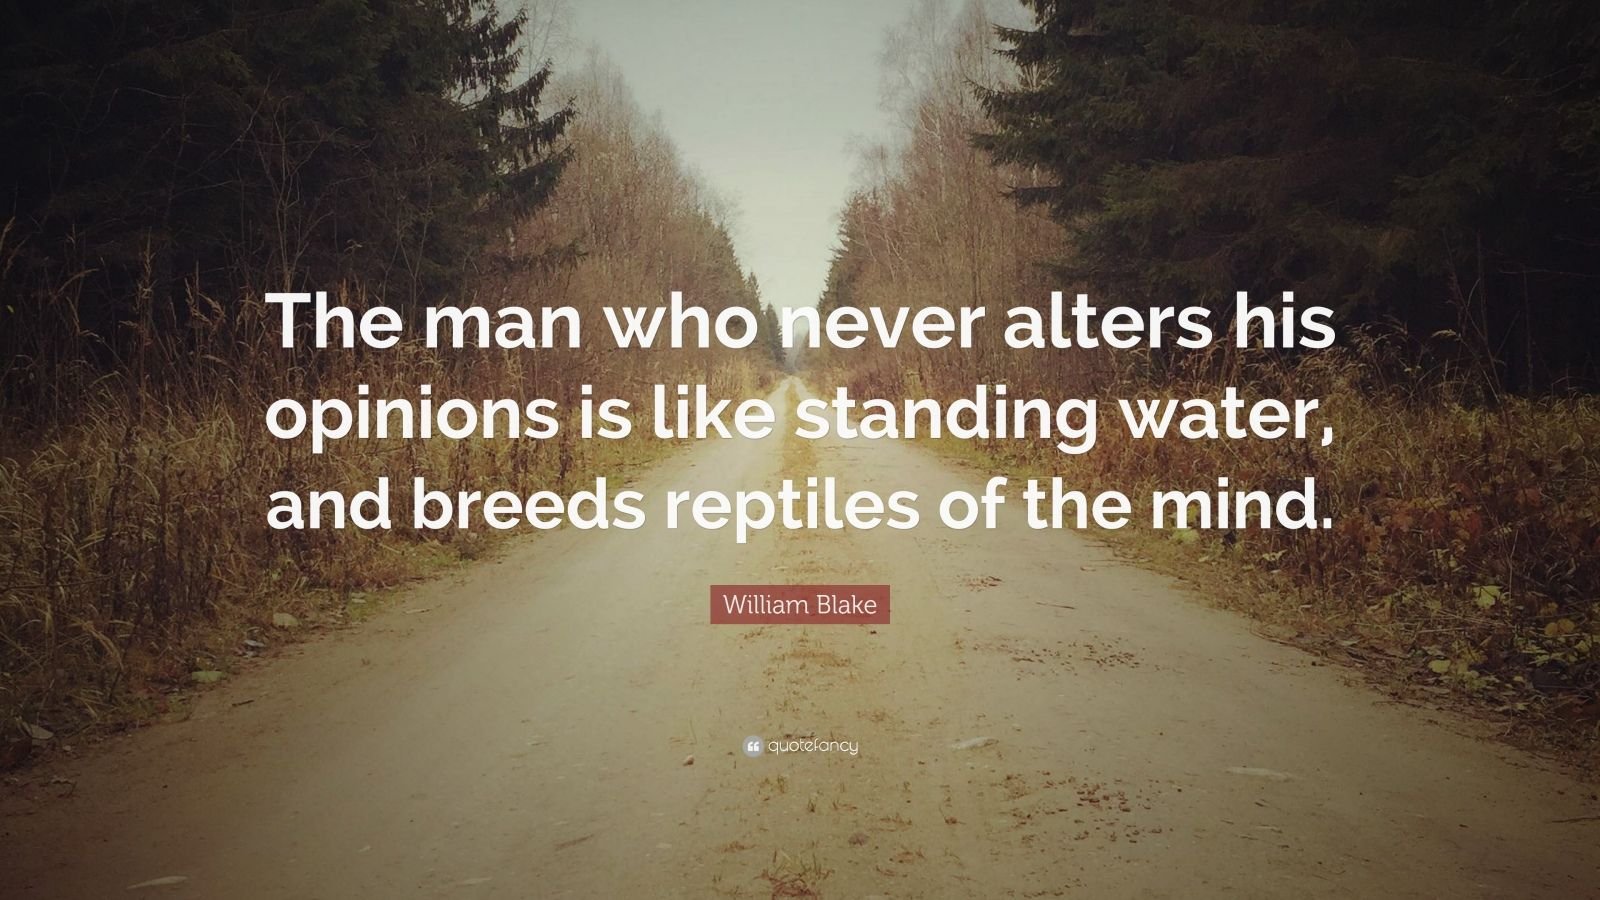 """William Blake Quote: """"The man who never alters his opinions is like standing water, and breeds reptiles of the mind."""""""